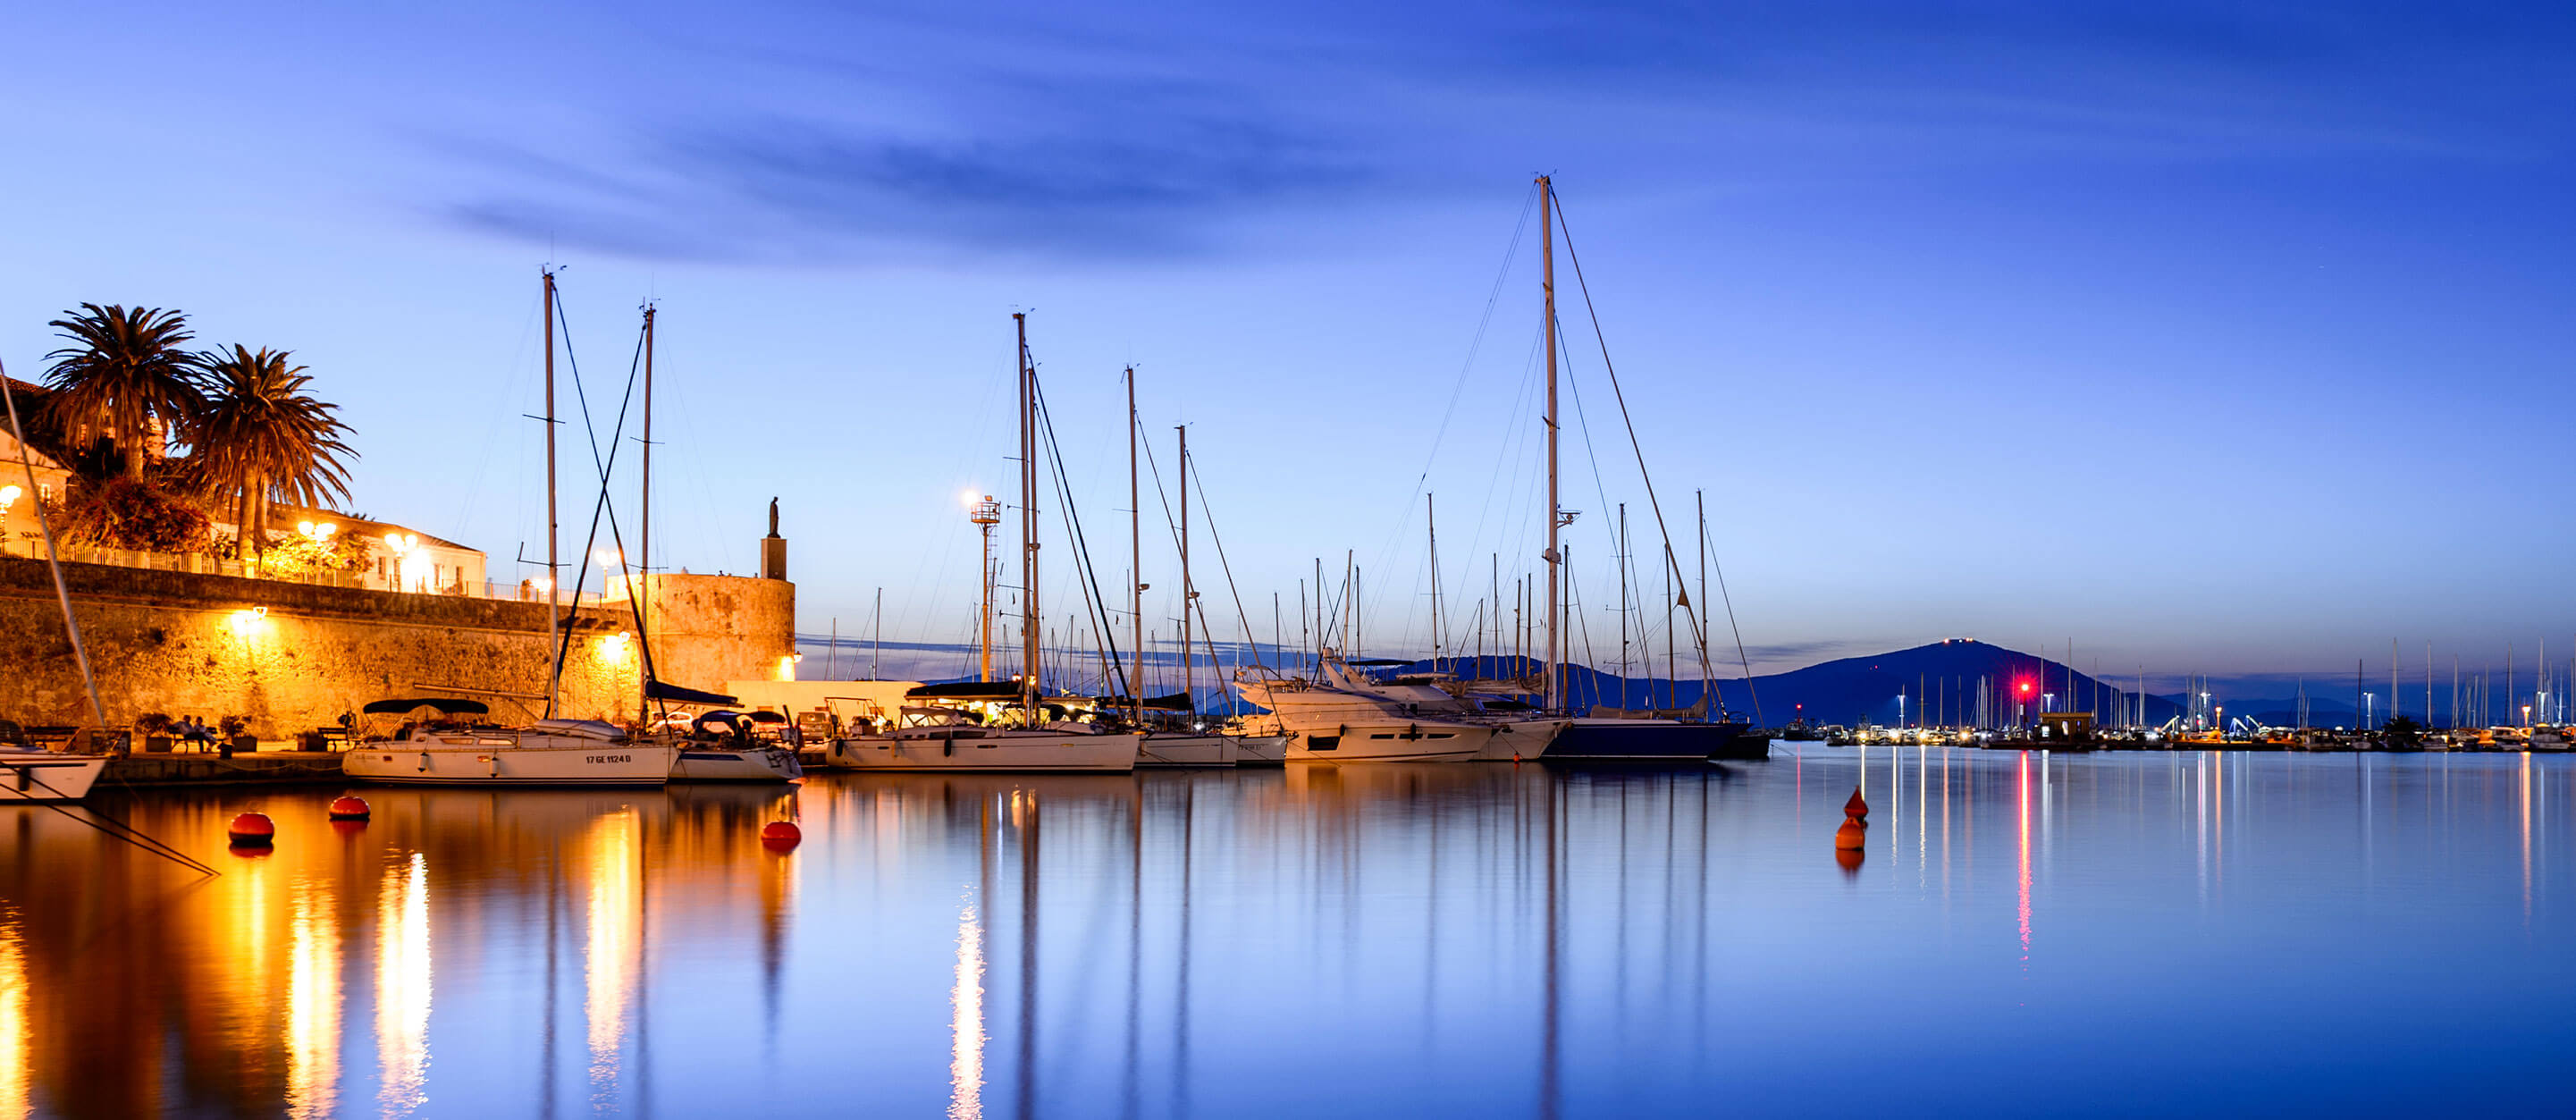 10 things to see in alghero